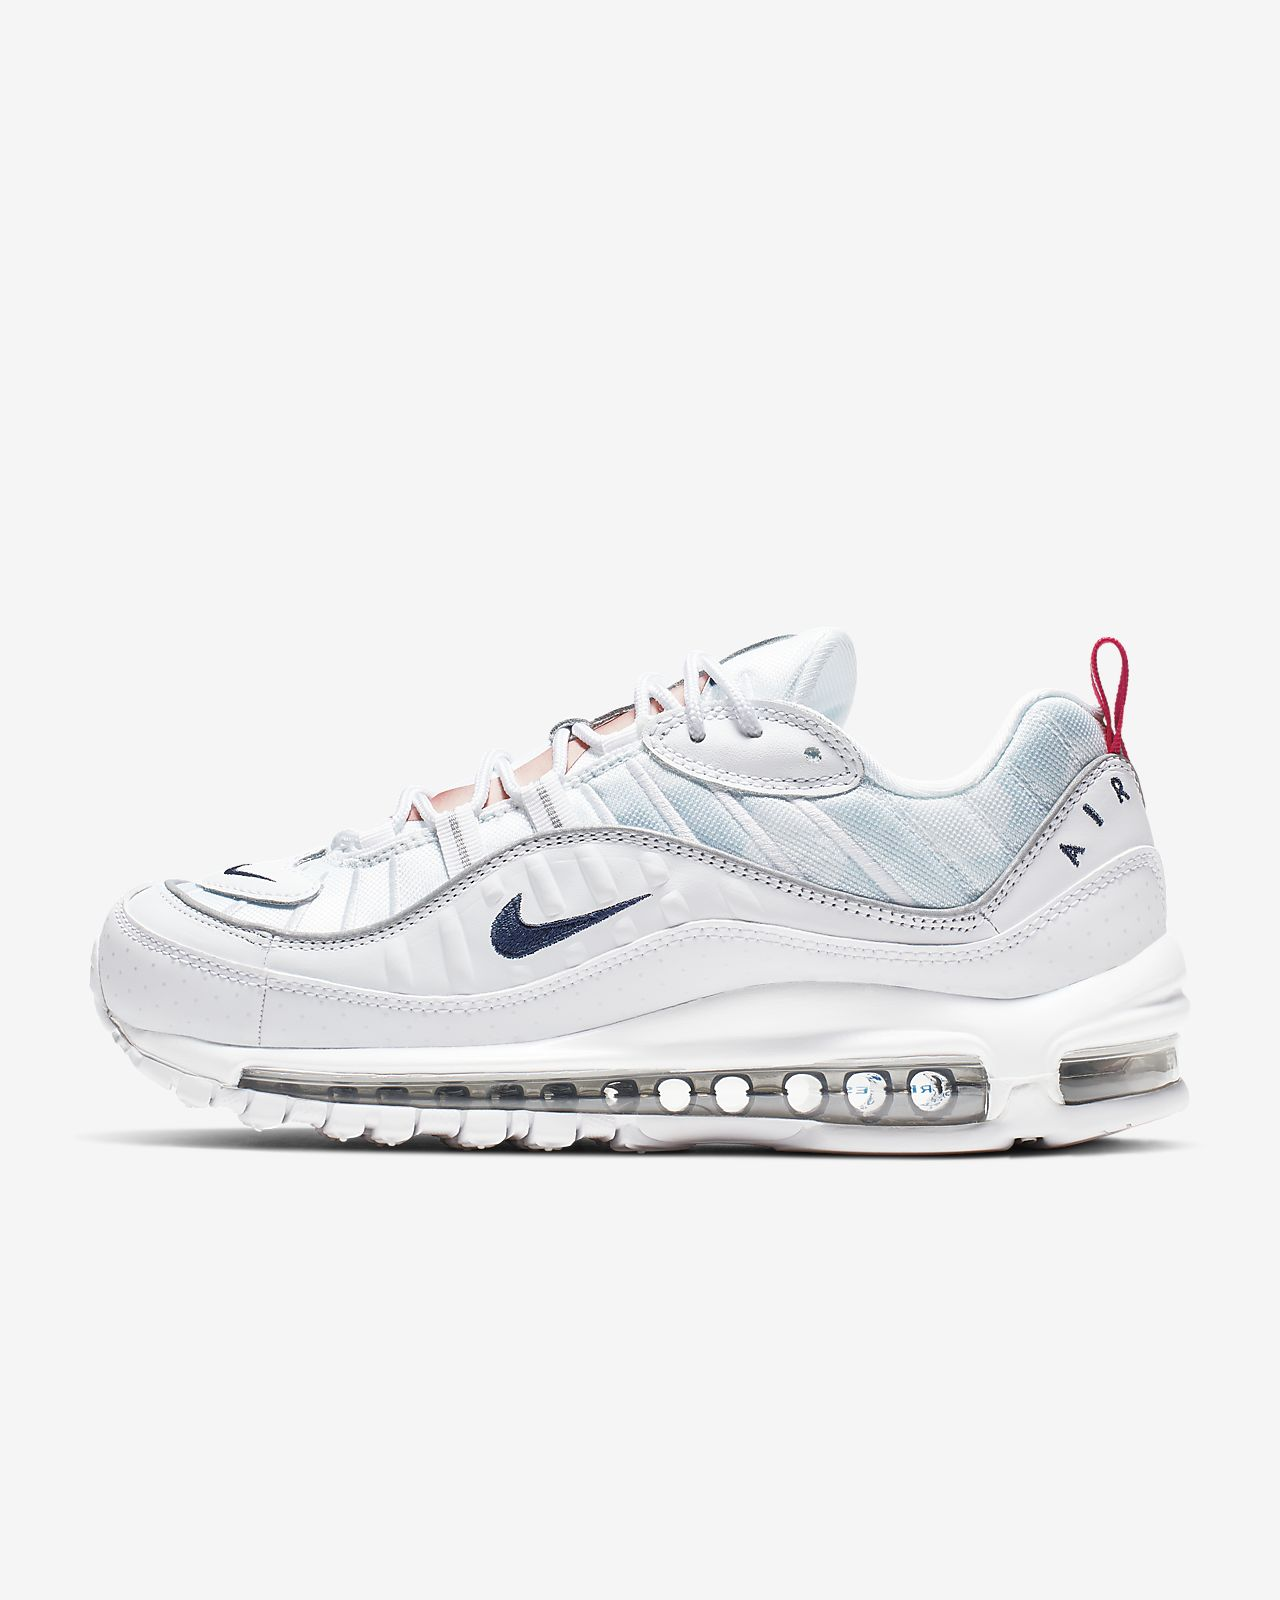 new appearance cheap price sneakers nike air max